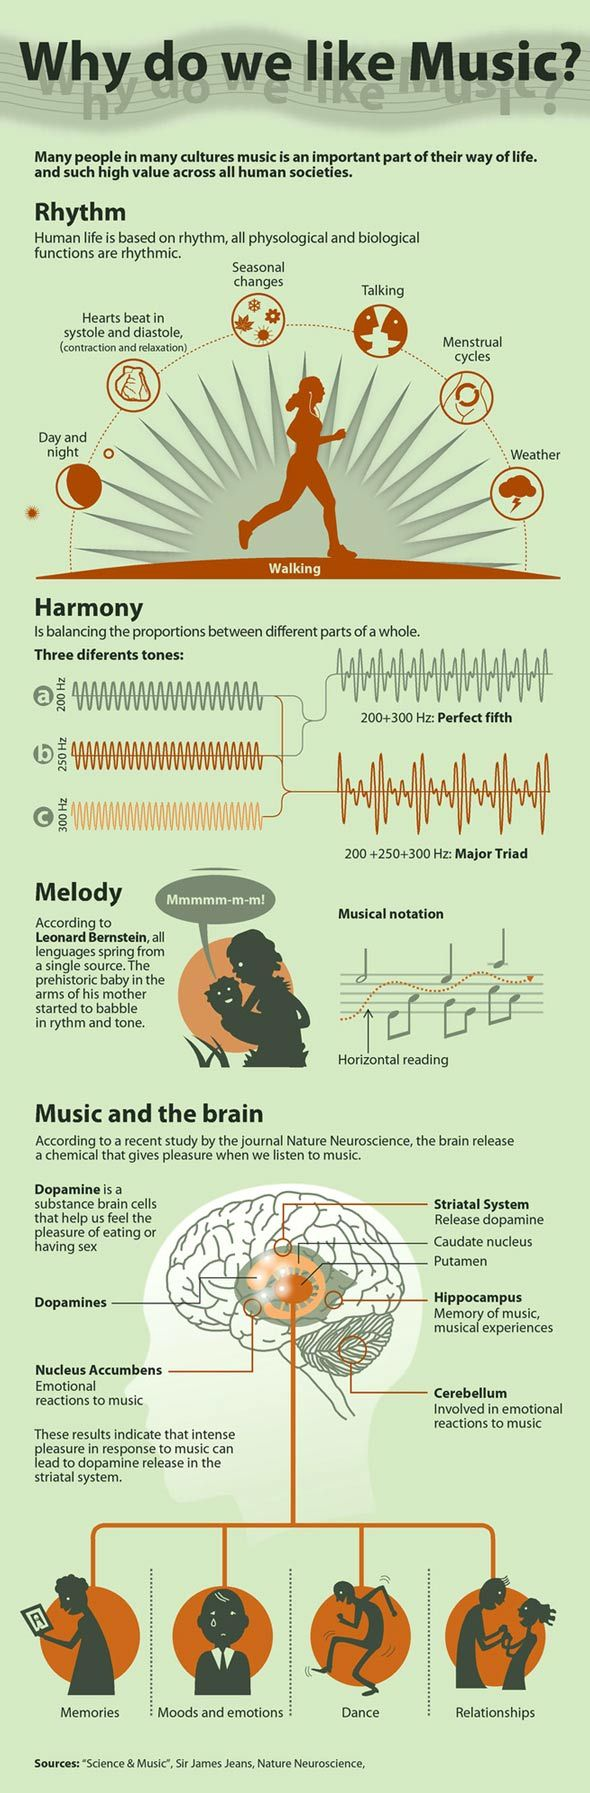 Why Do We Like Music? Infographic